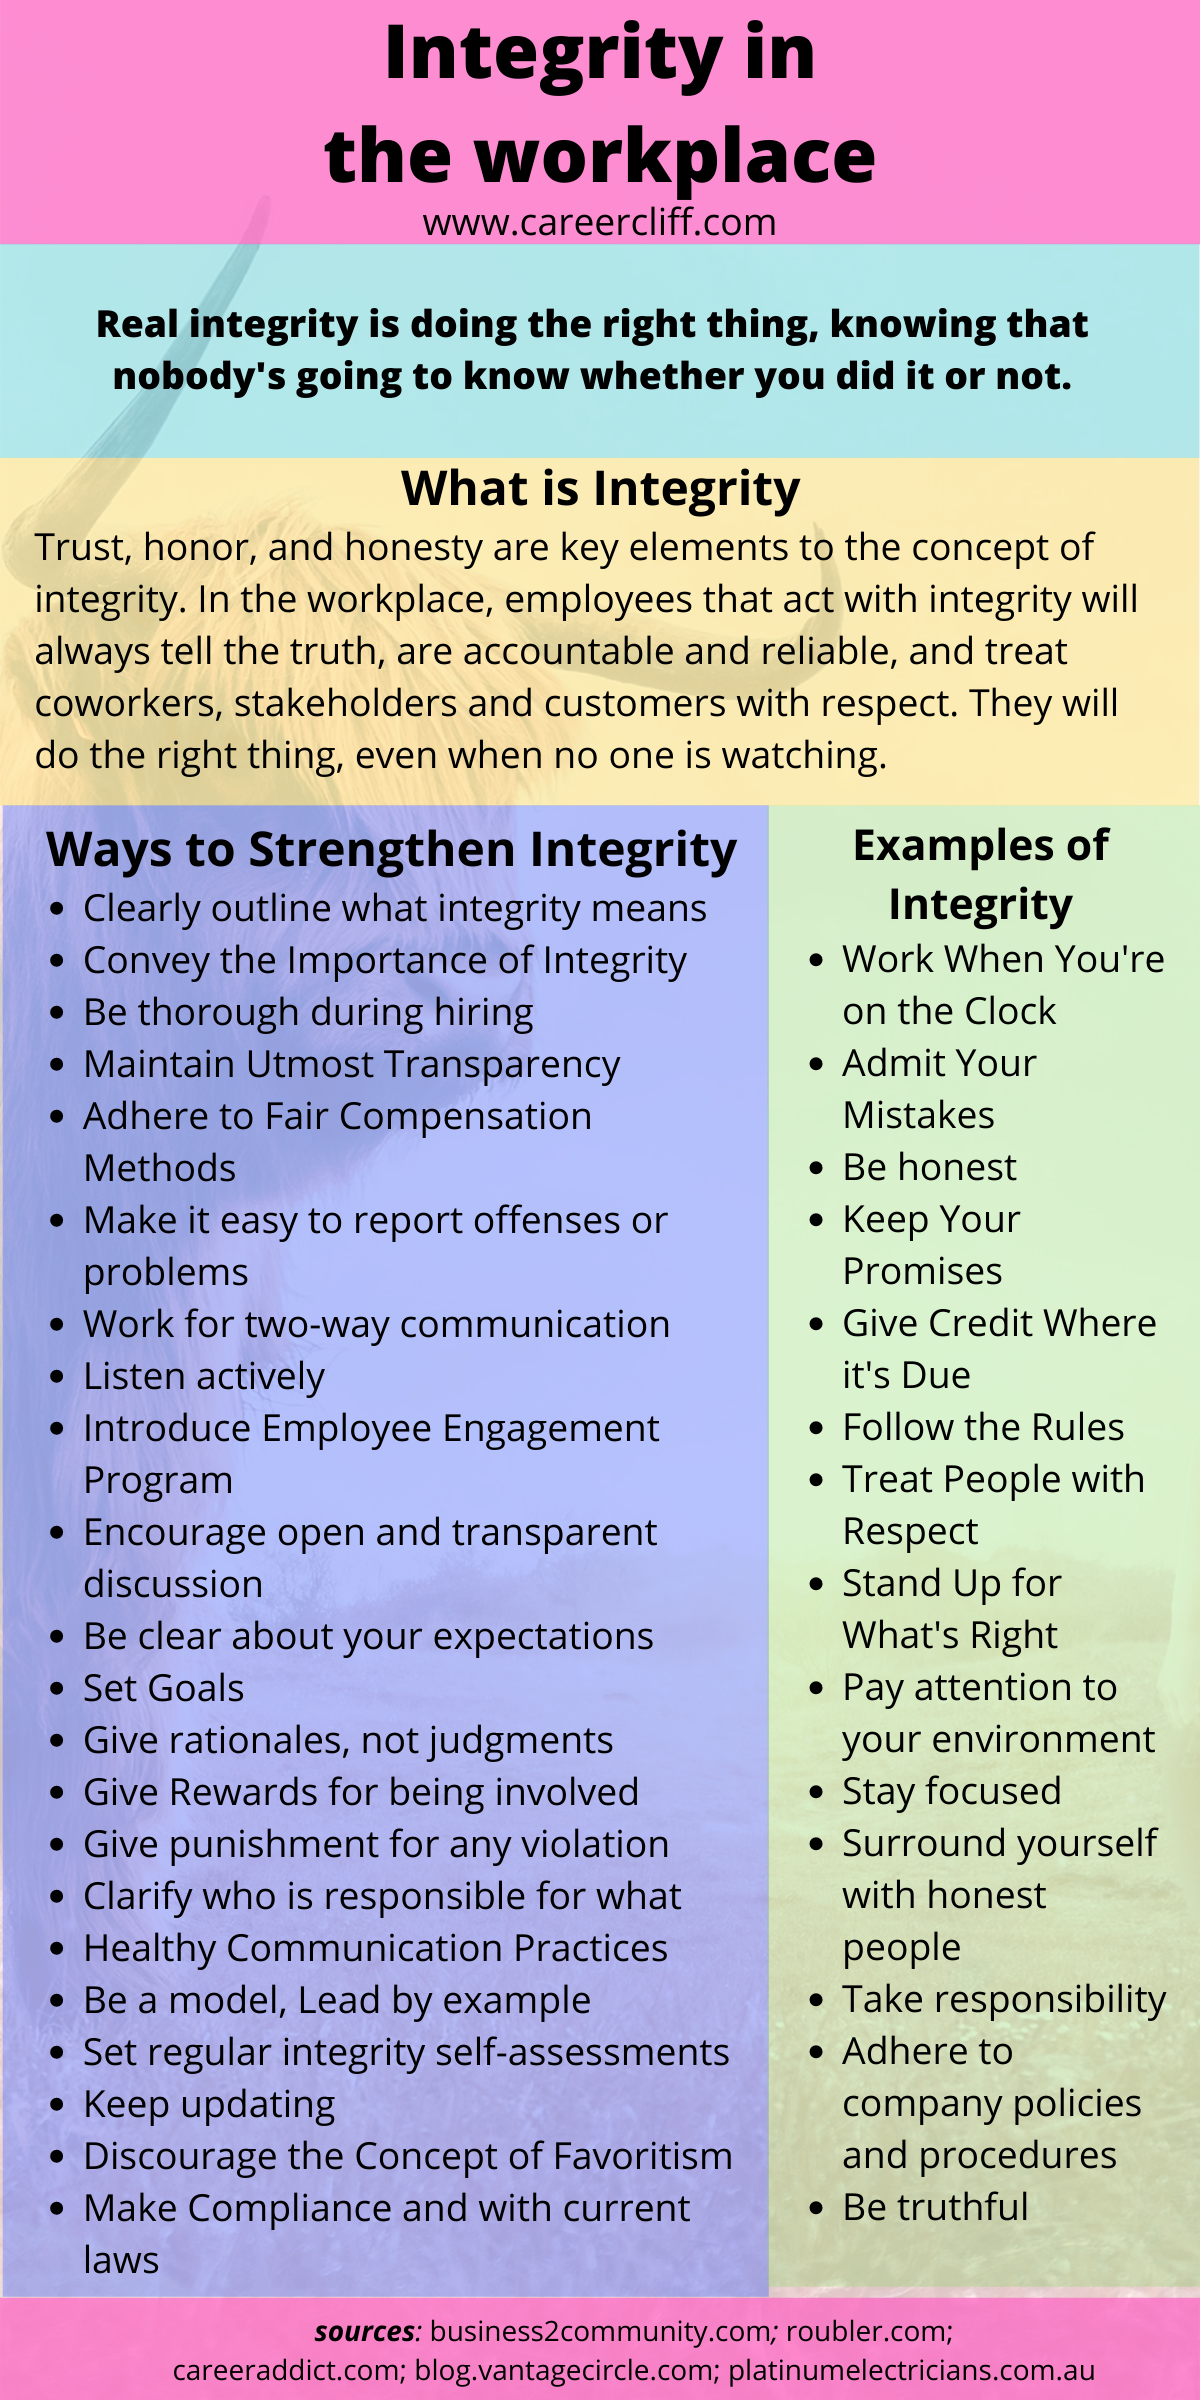 integrity in the workplace - work integrity - job integrity